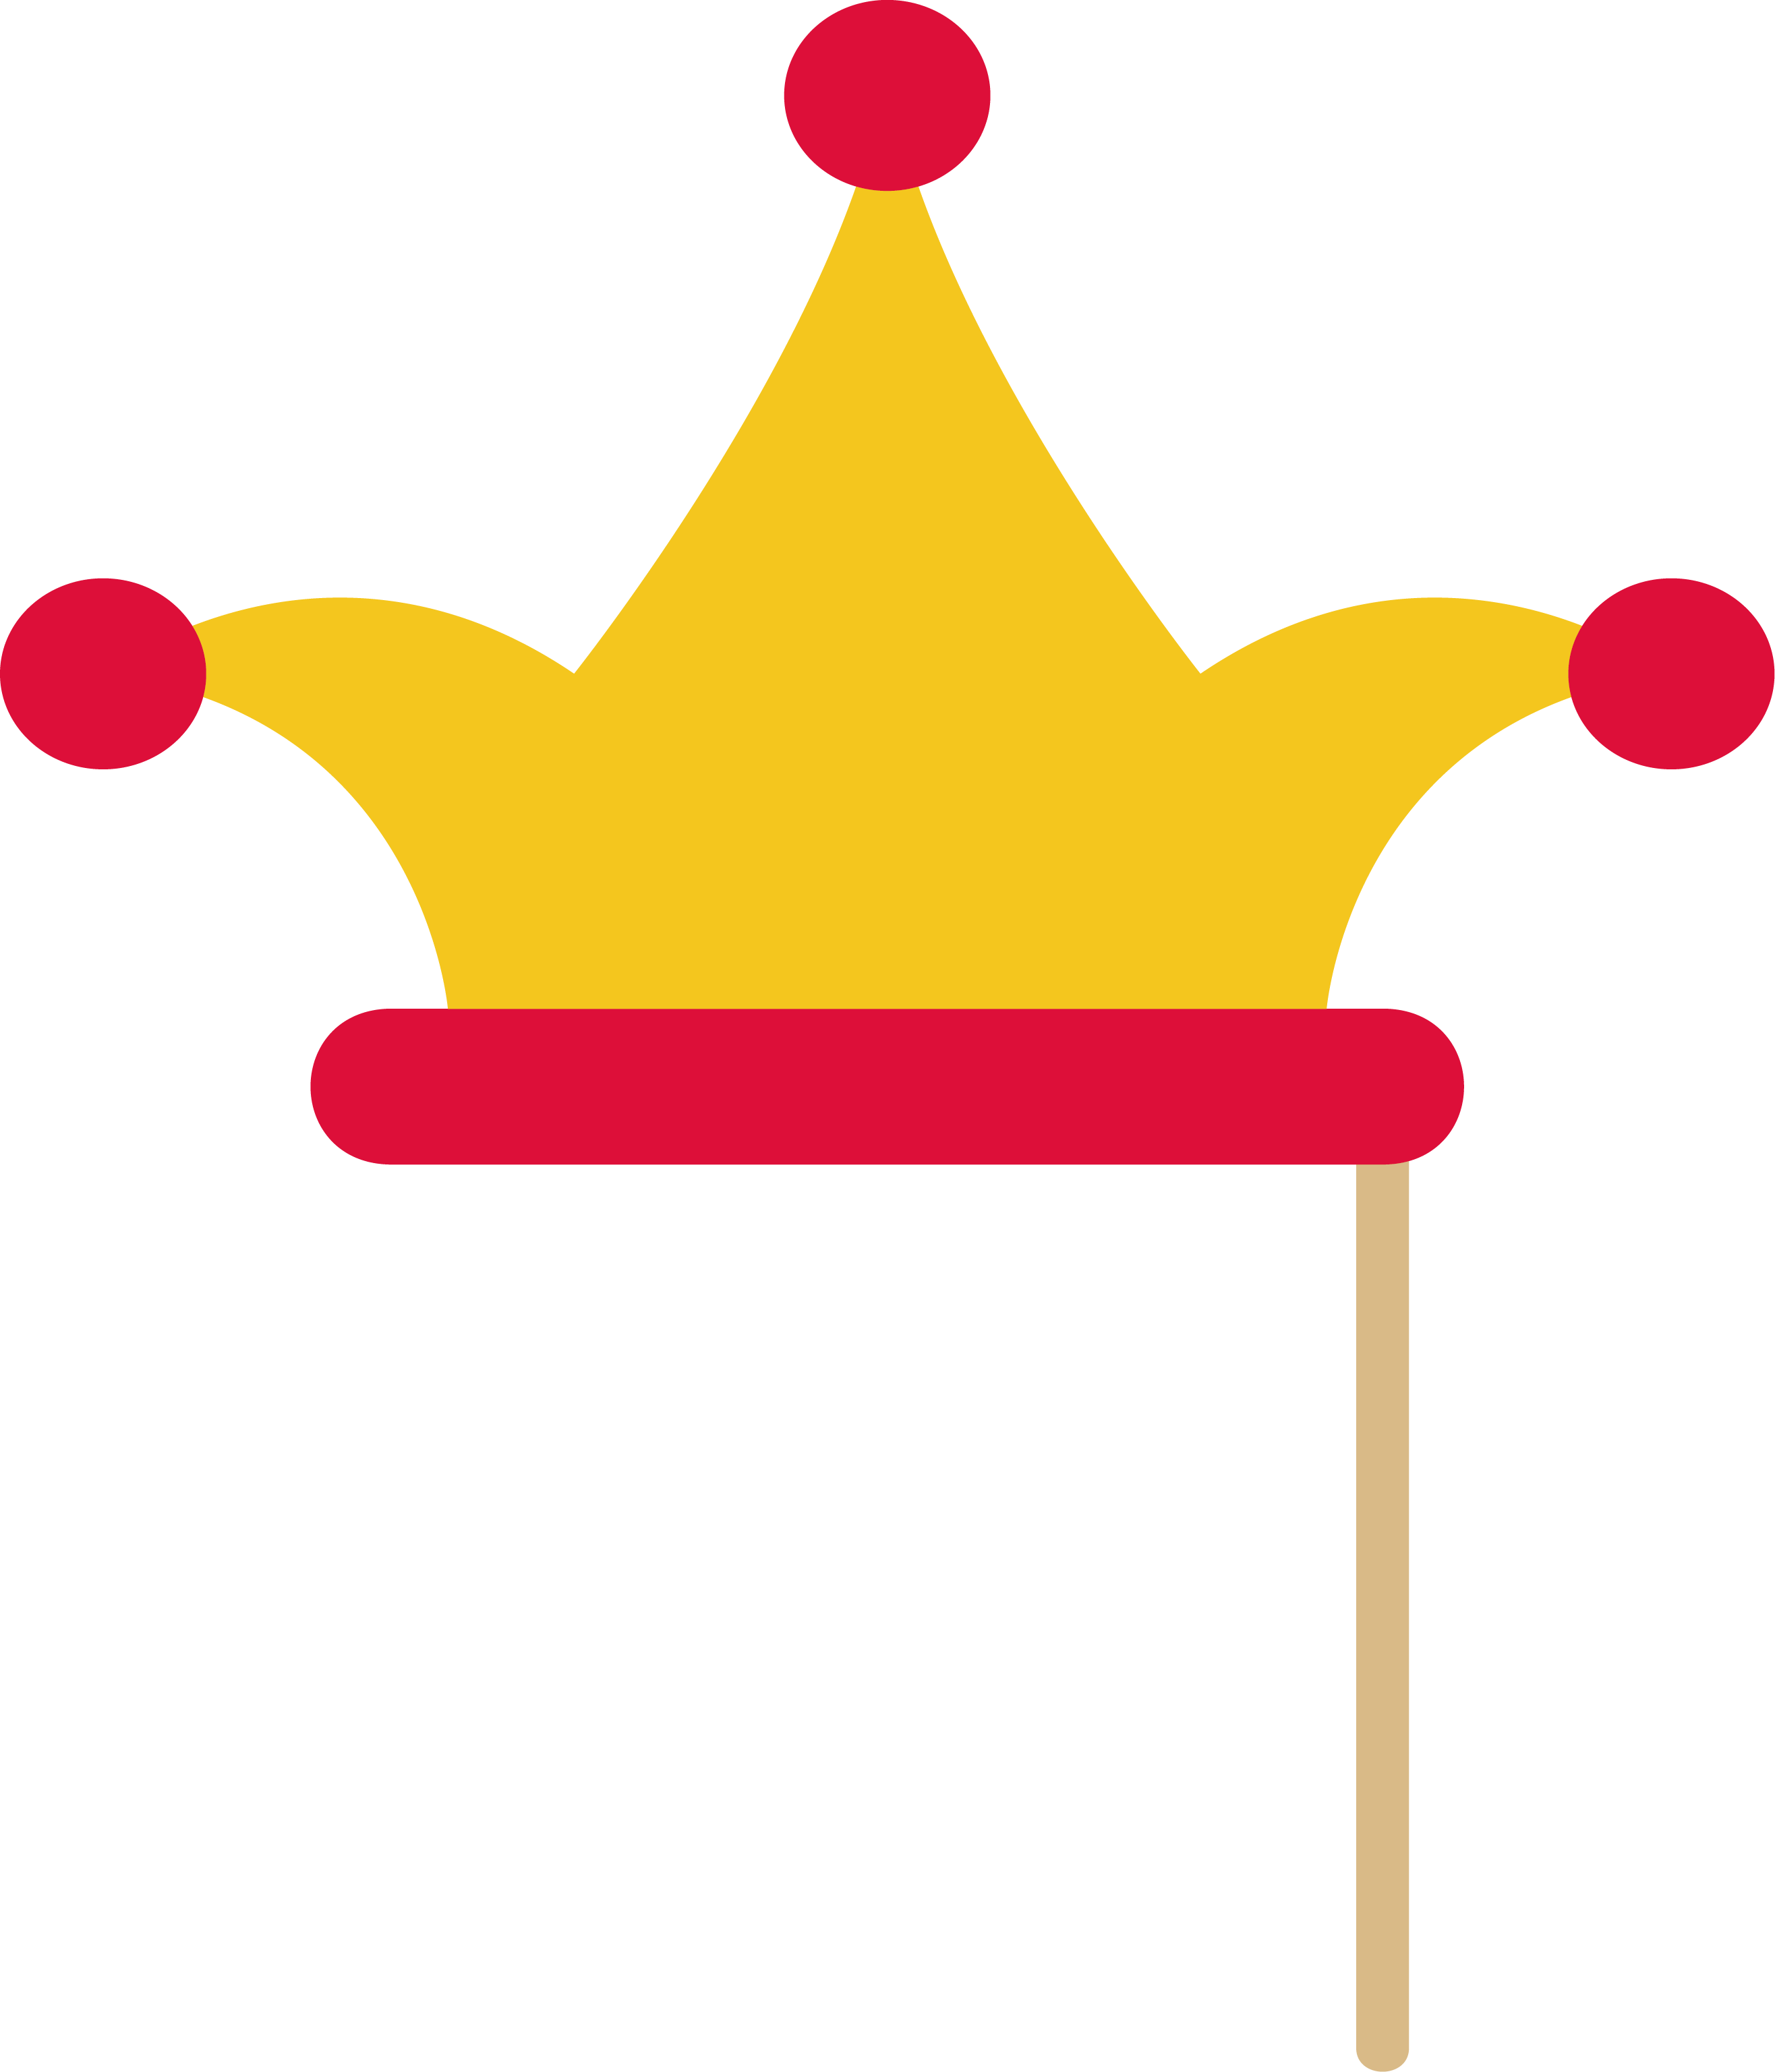 Burger king crown clipart png download Sticker Clip art - Little Crown Mito stickers 2632*3073 transprent ... png download